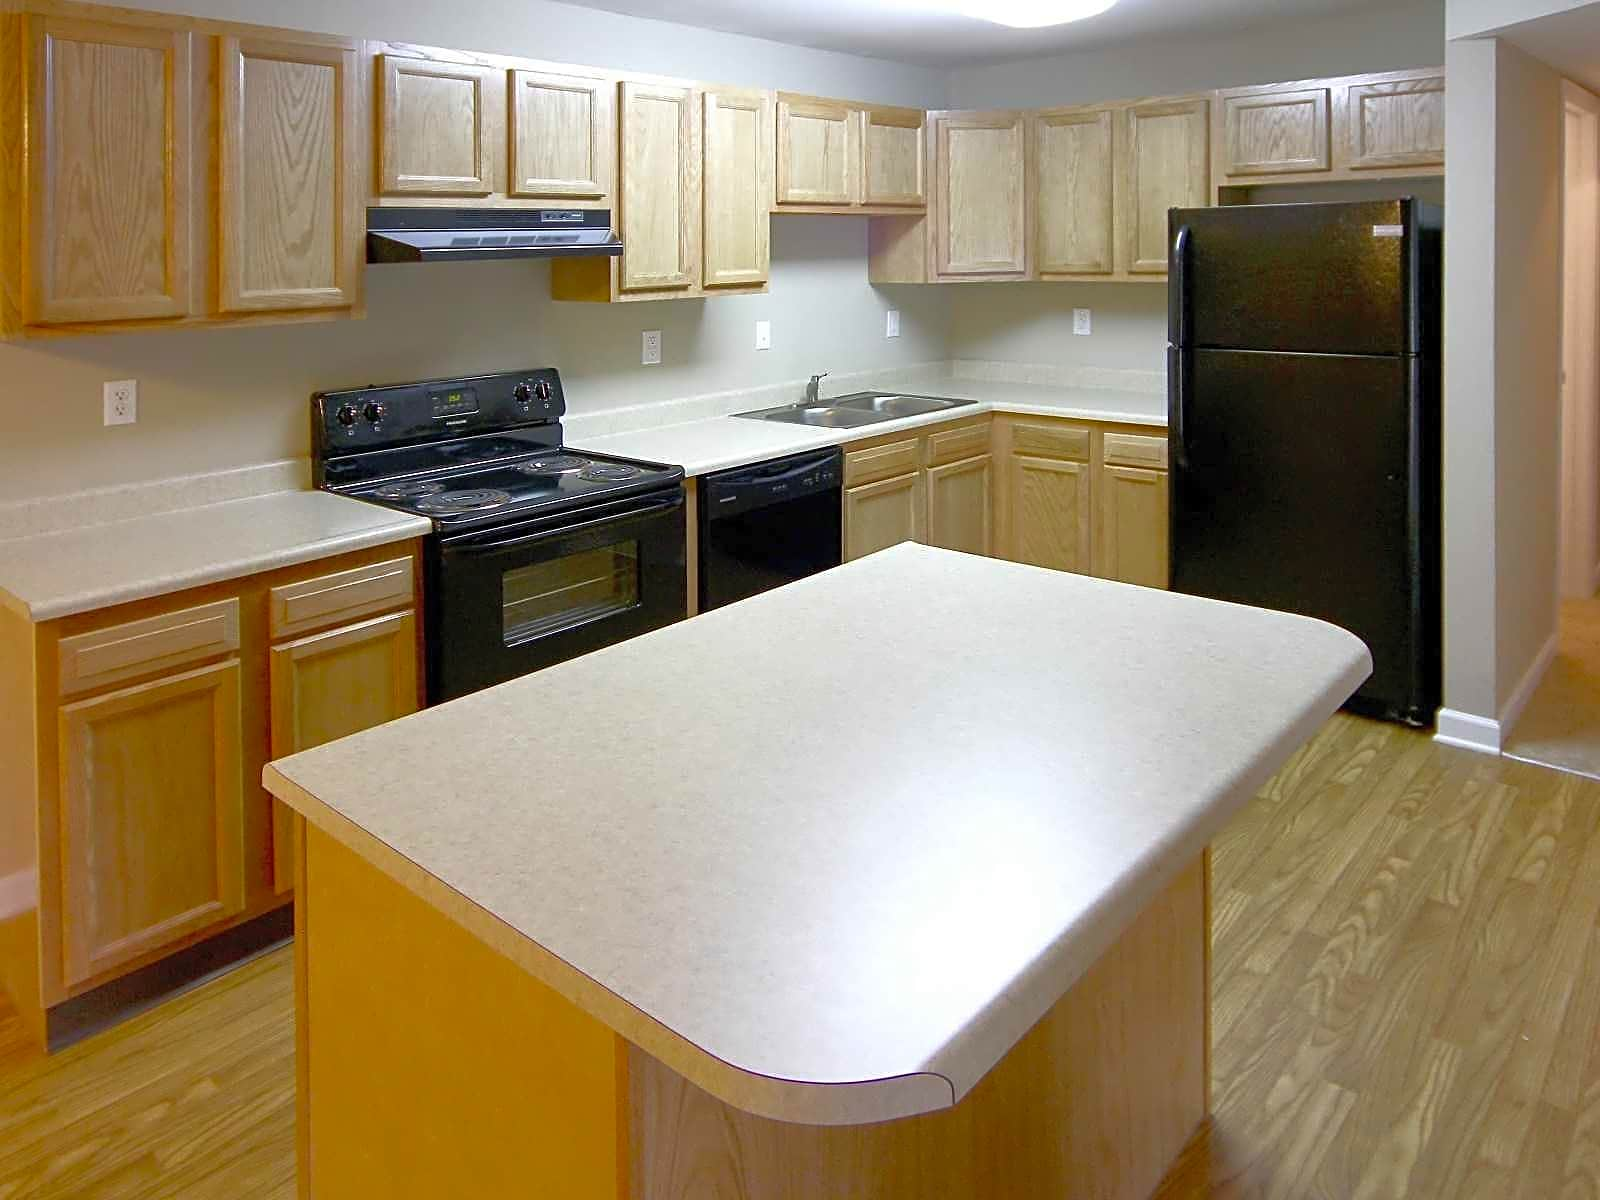 Photo: Indianapolis Apartment for Rent - $518.00 / month; 1 Bd & 1 Ba